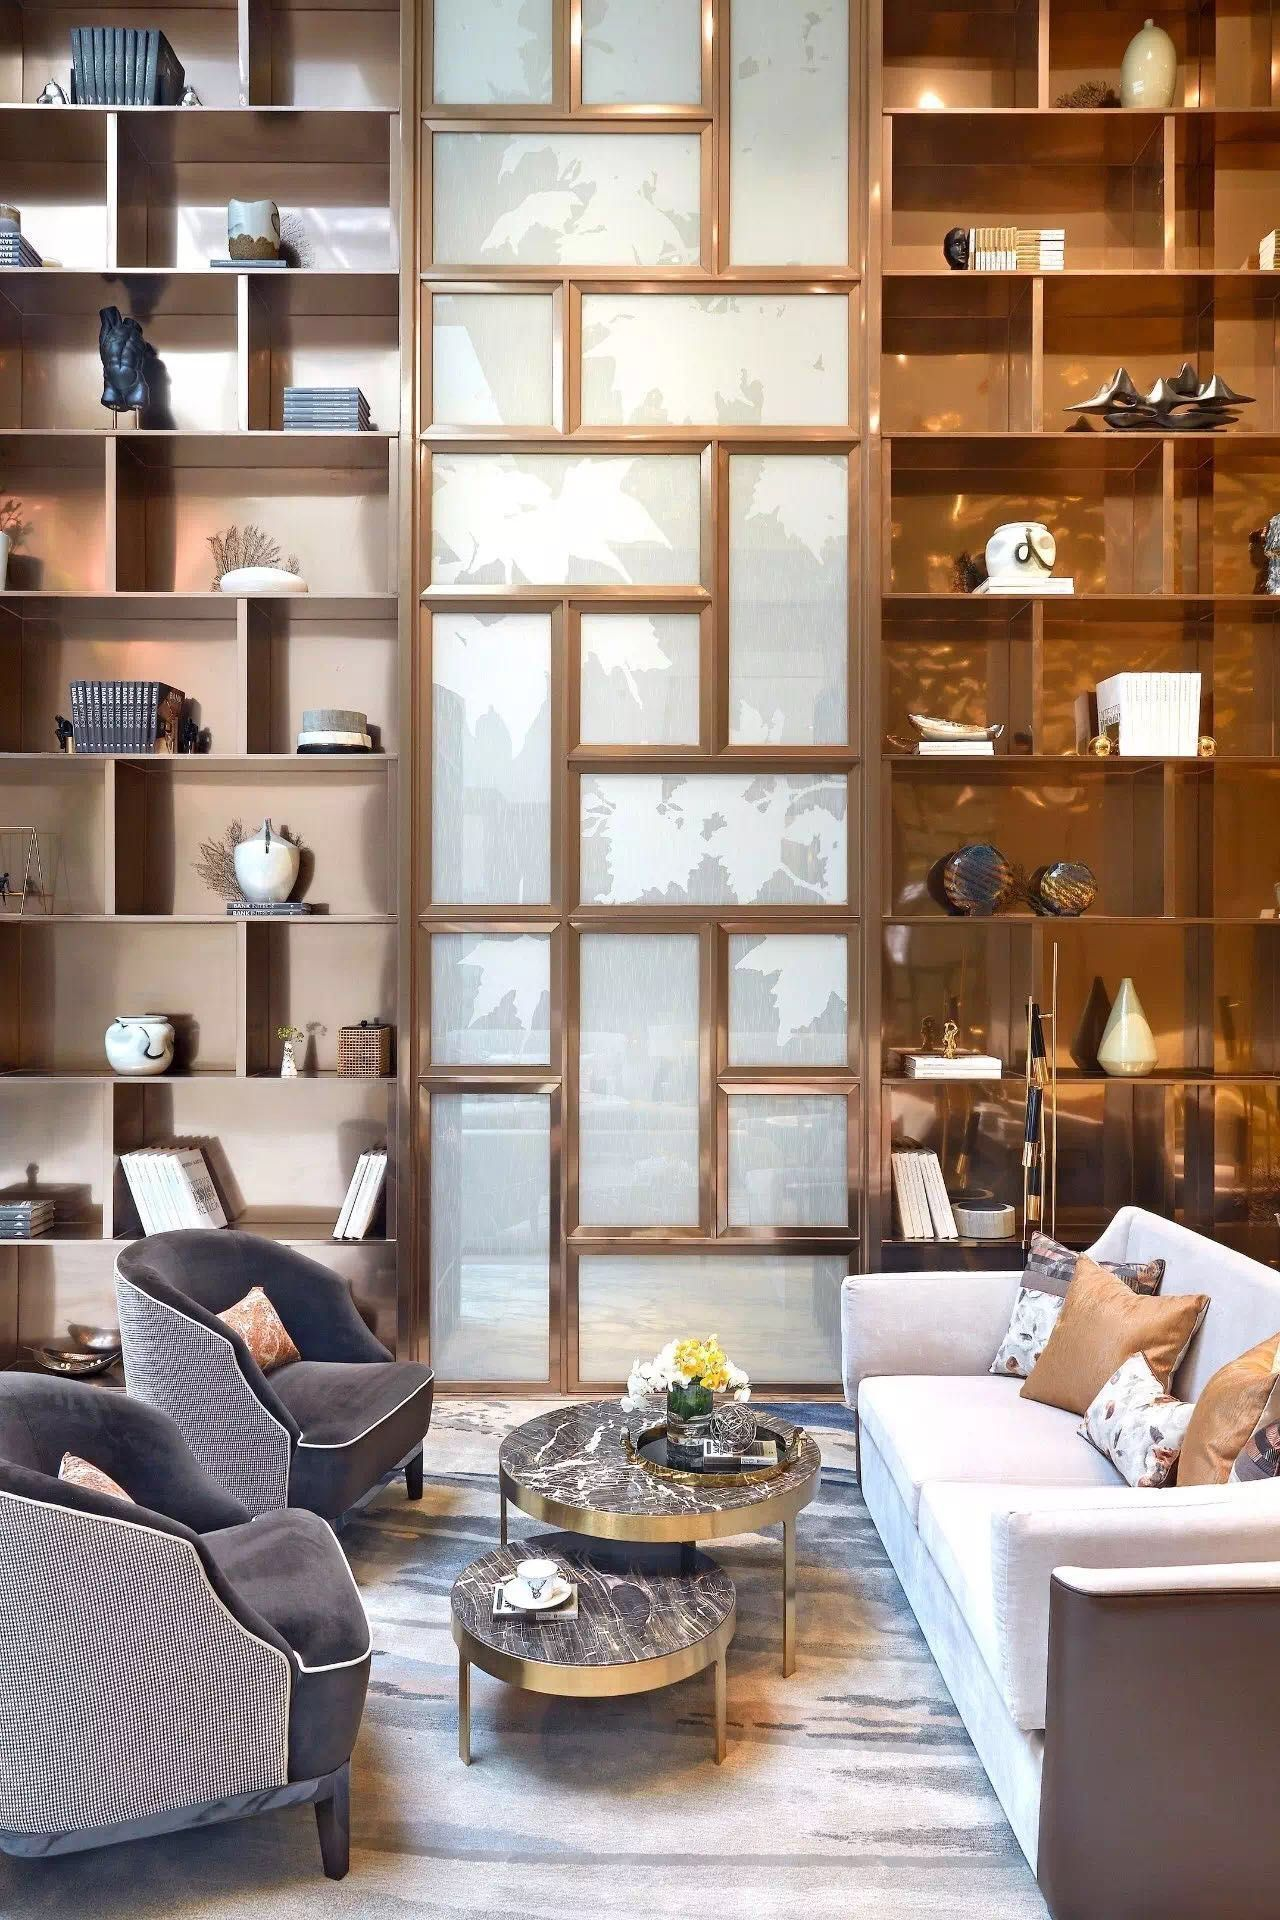 Interior Design Furniture Selection ~ You might be looking for a selection of furniture design